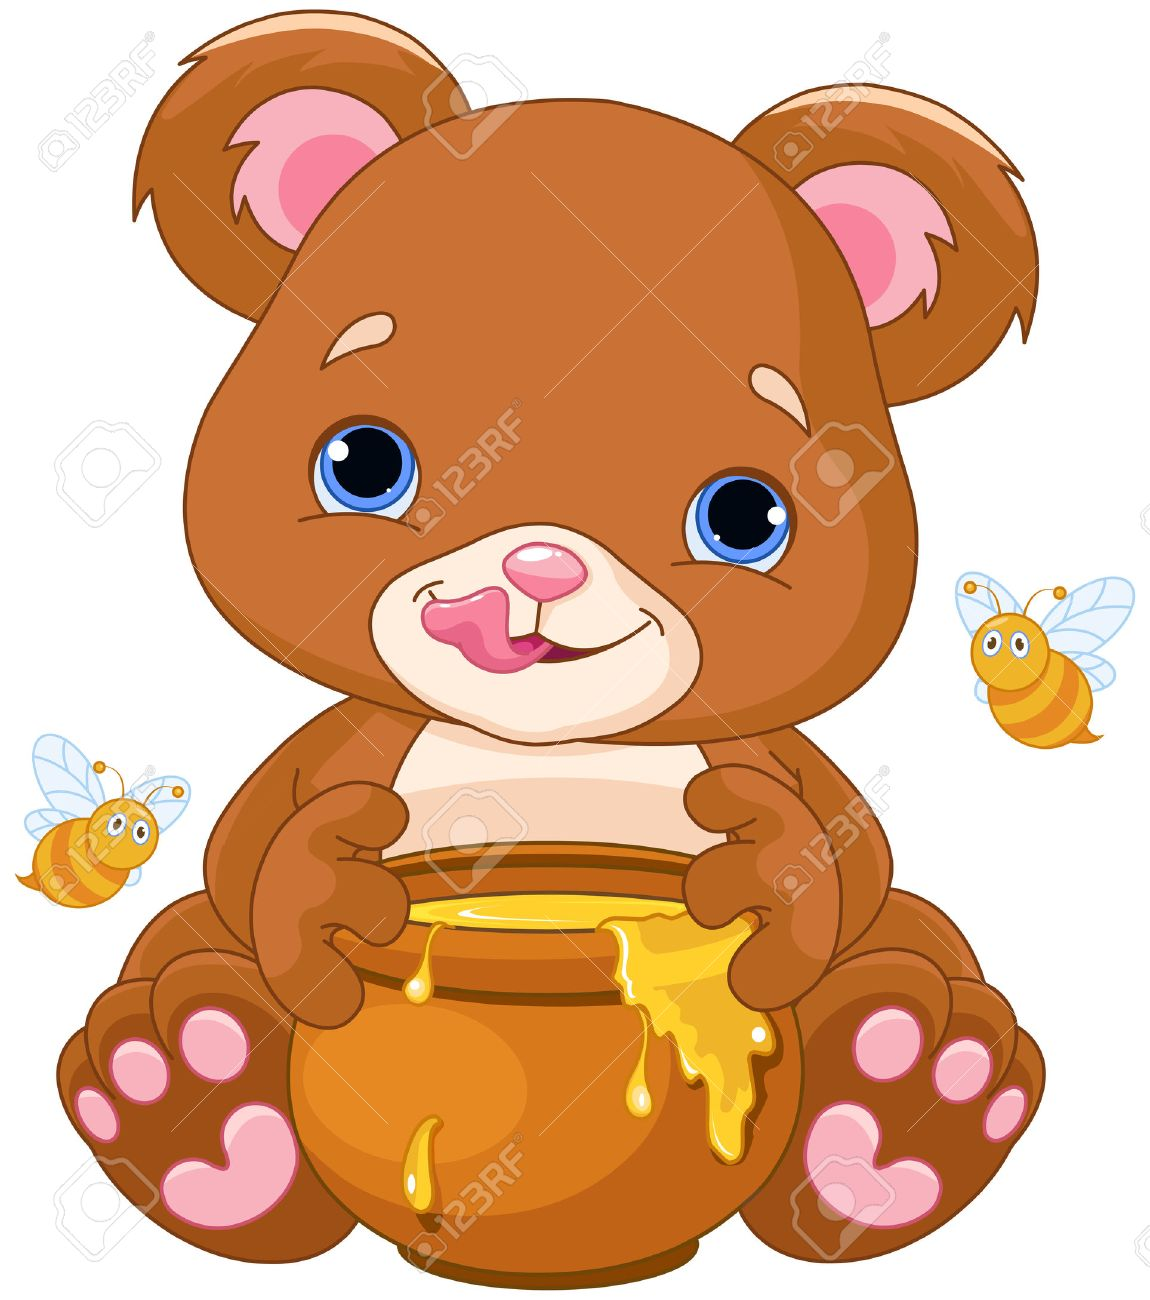 Illustration of cute bear preparing to eat honey.